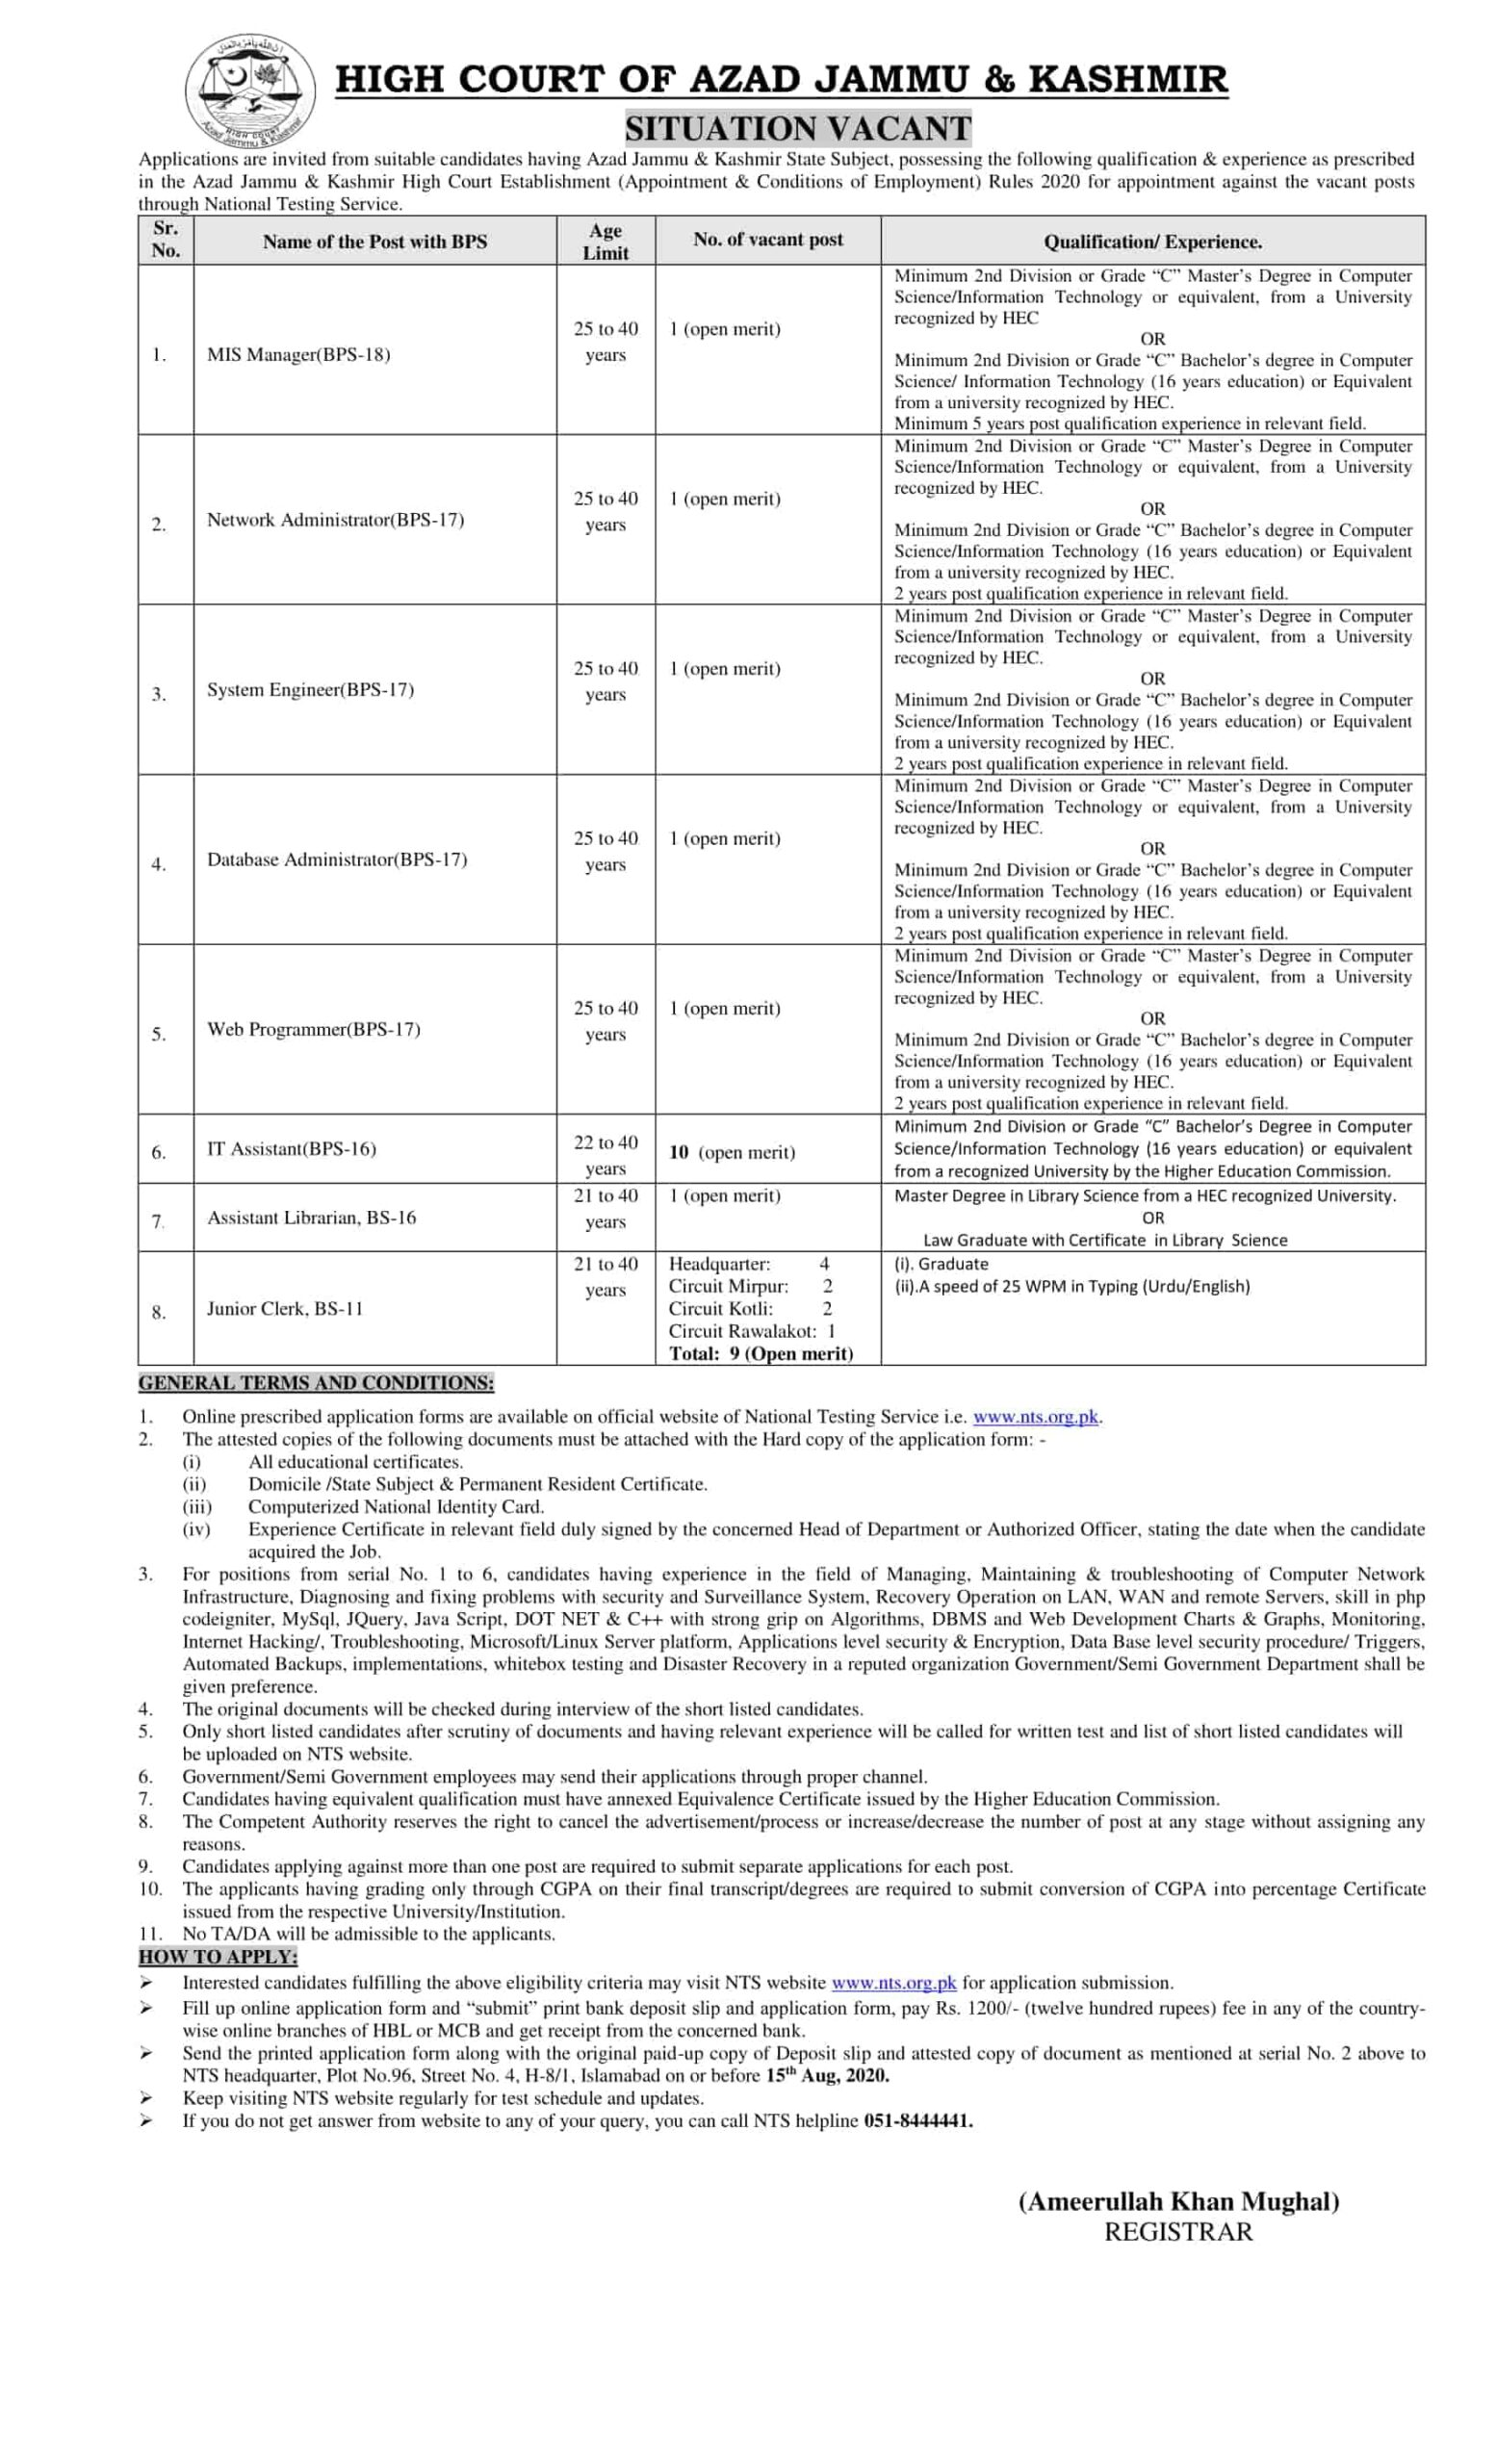 Azad Kashmir High Court NTS Jobs August 2020